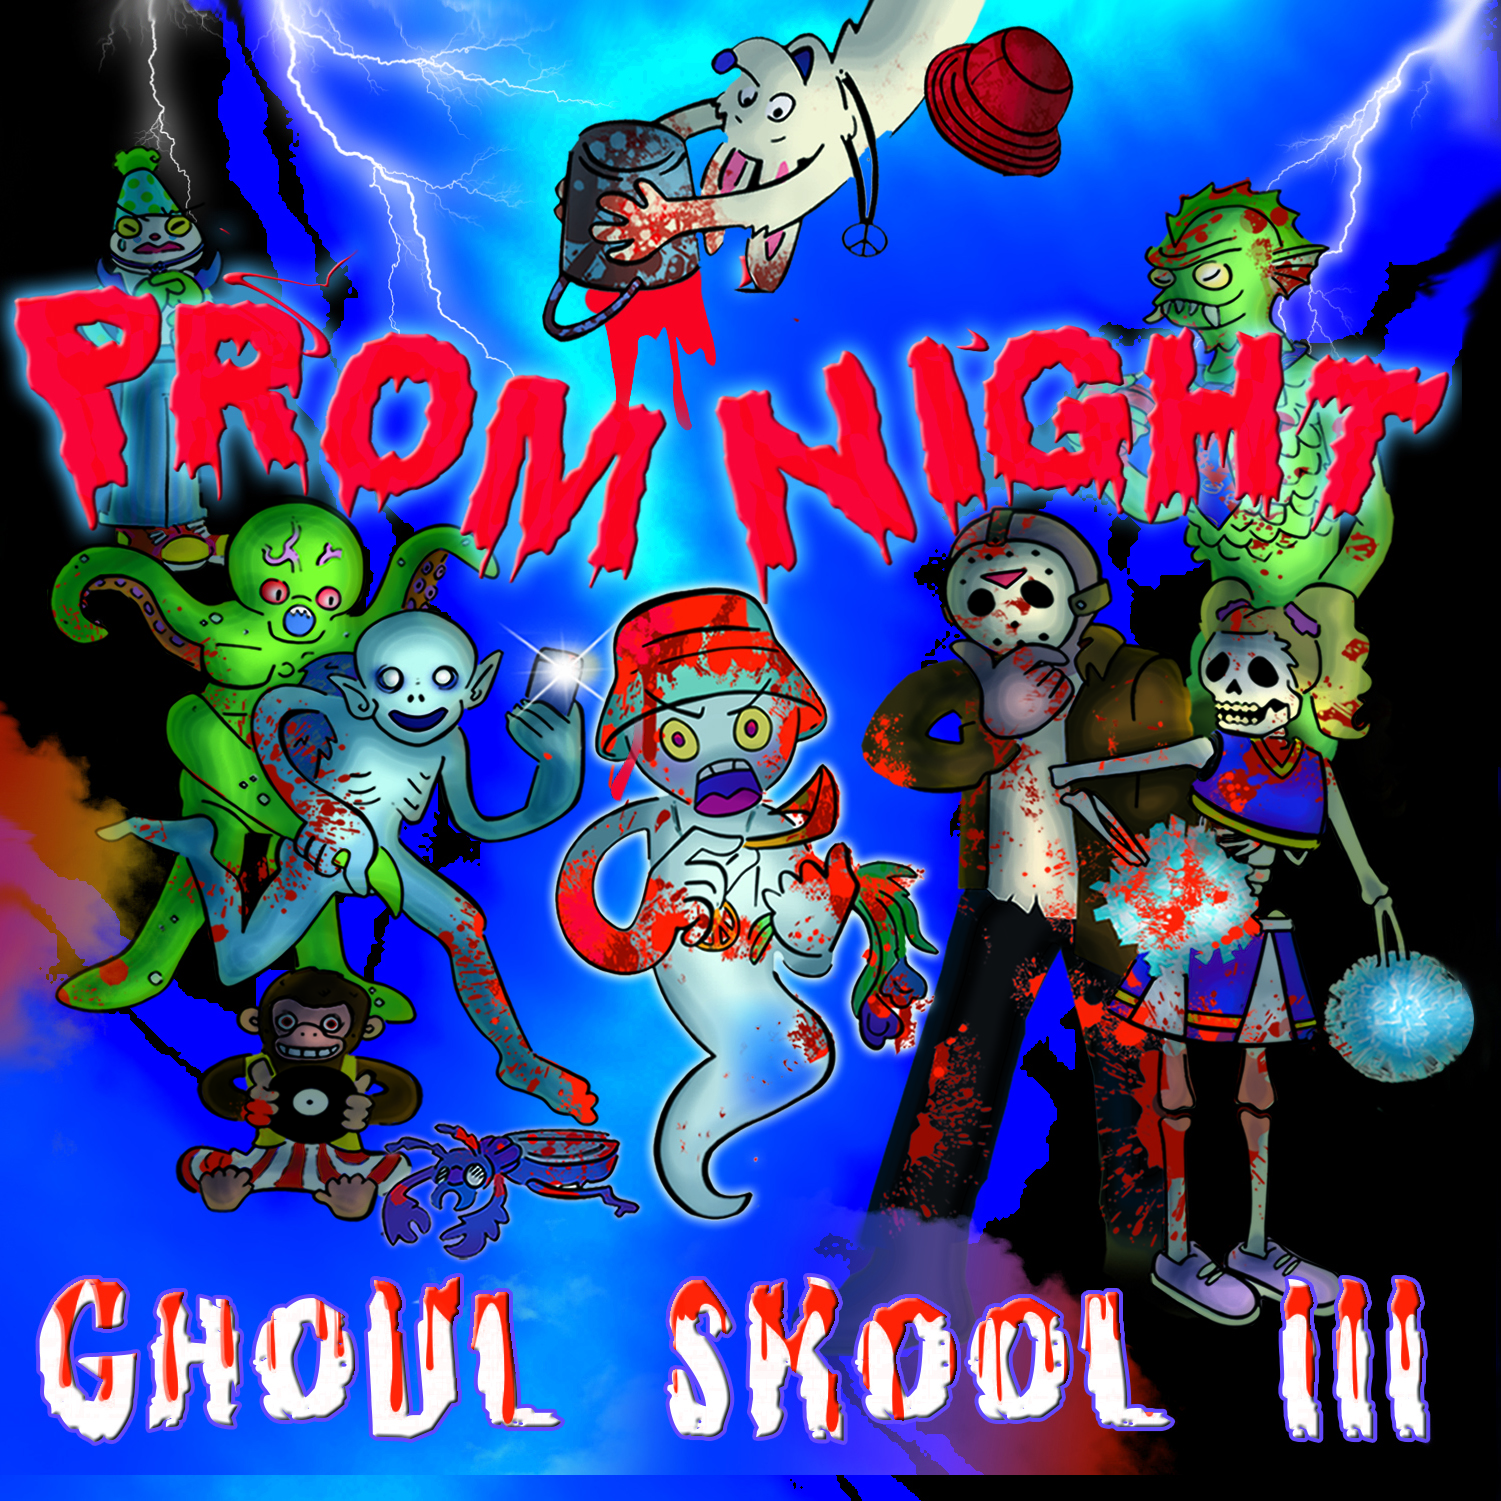 [KFALP004] Various - Ghoul Skool LP Vol. 3 - Prom Night (2xCD + Digital)